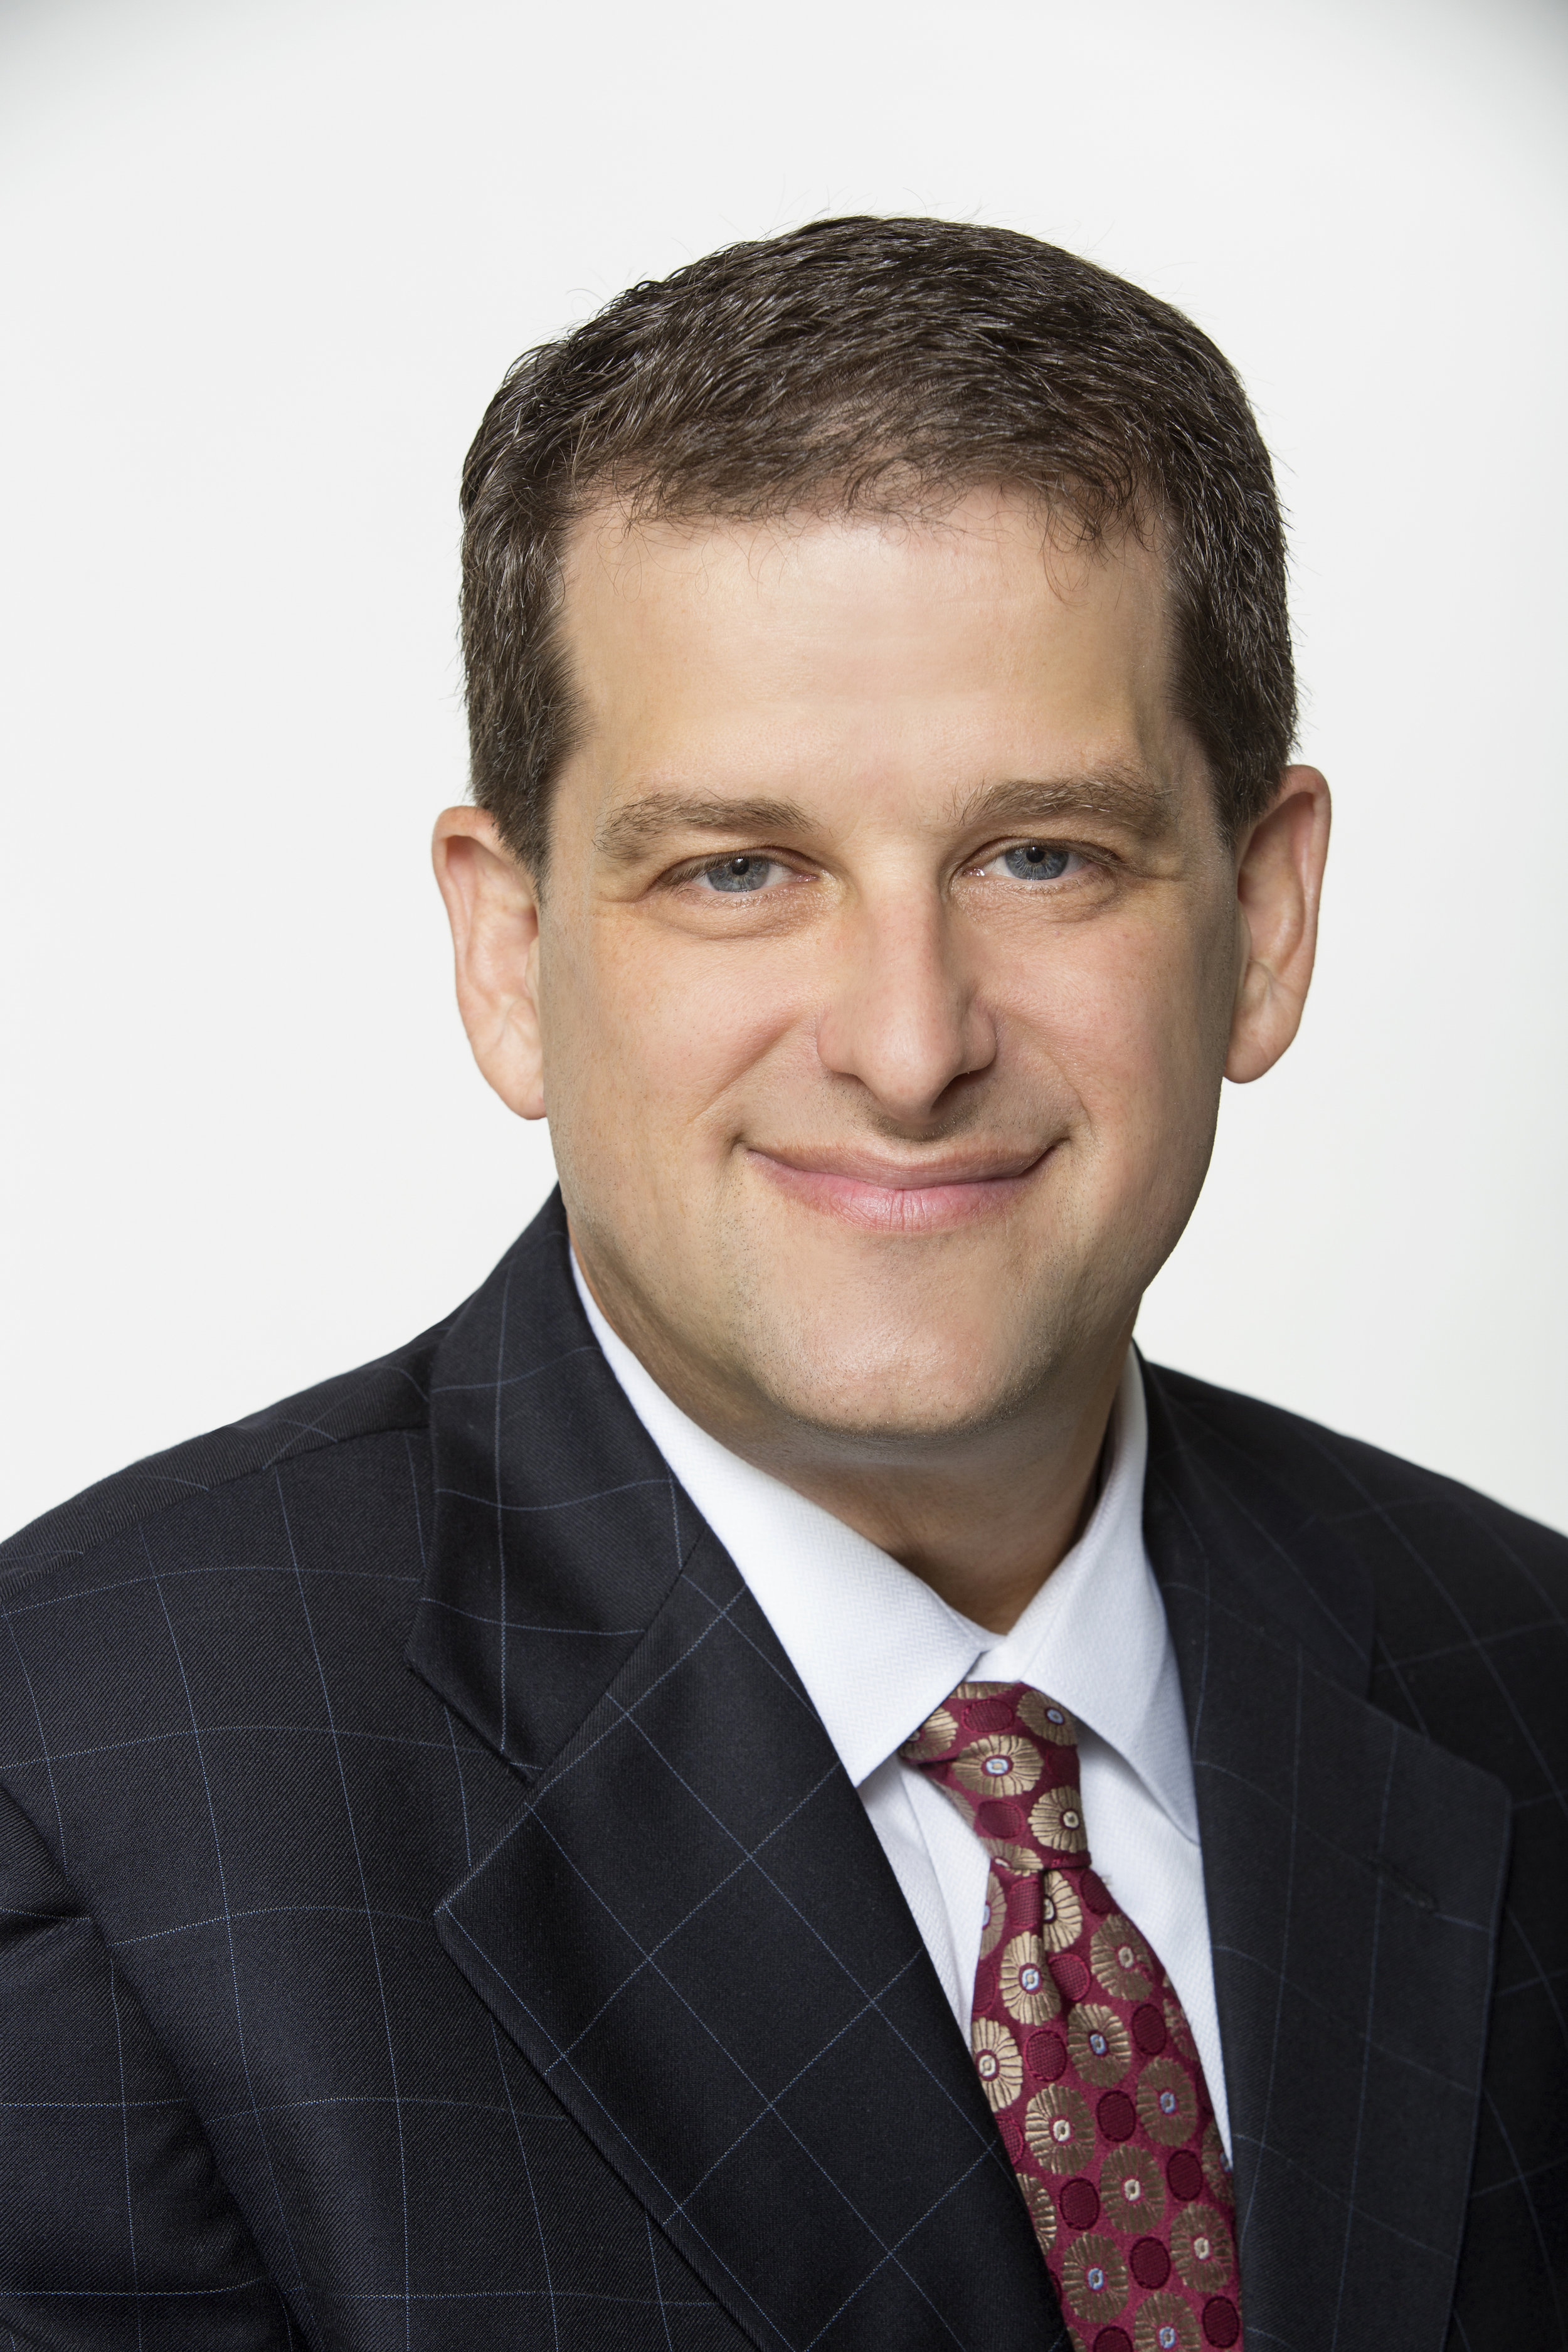 Sean paul rieger - Lead attorney, architect, and broker